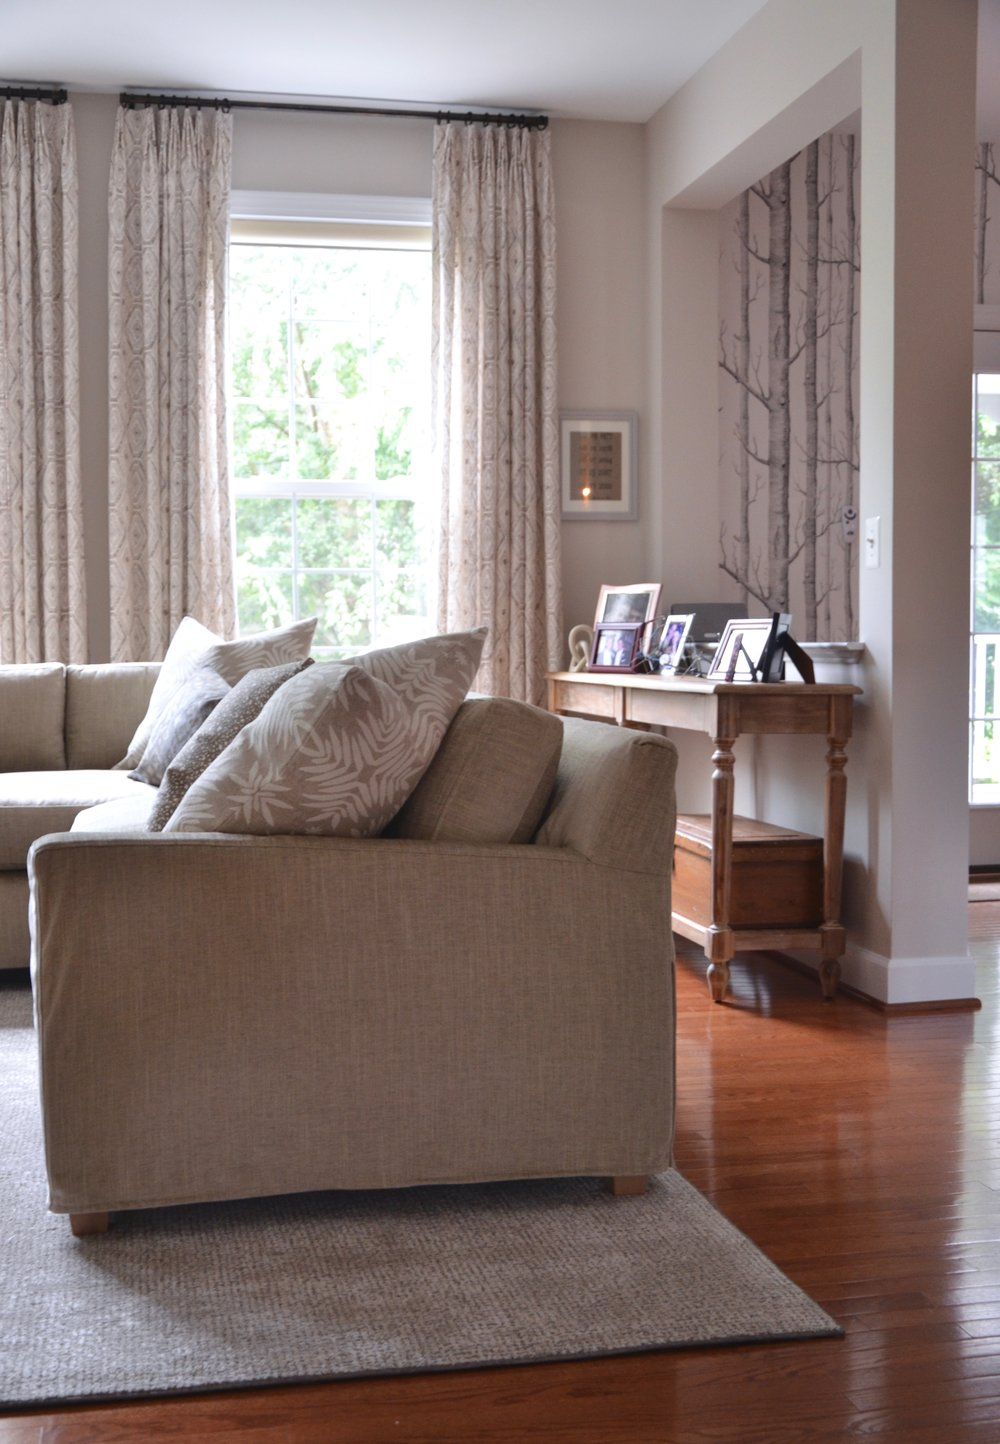 After:no more builder basic. Now a custom sectional, rug, and window treatments have wholly upgraded this family room in Herndon, VA.